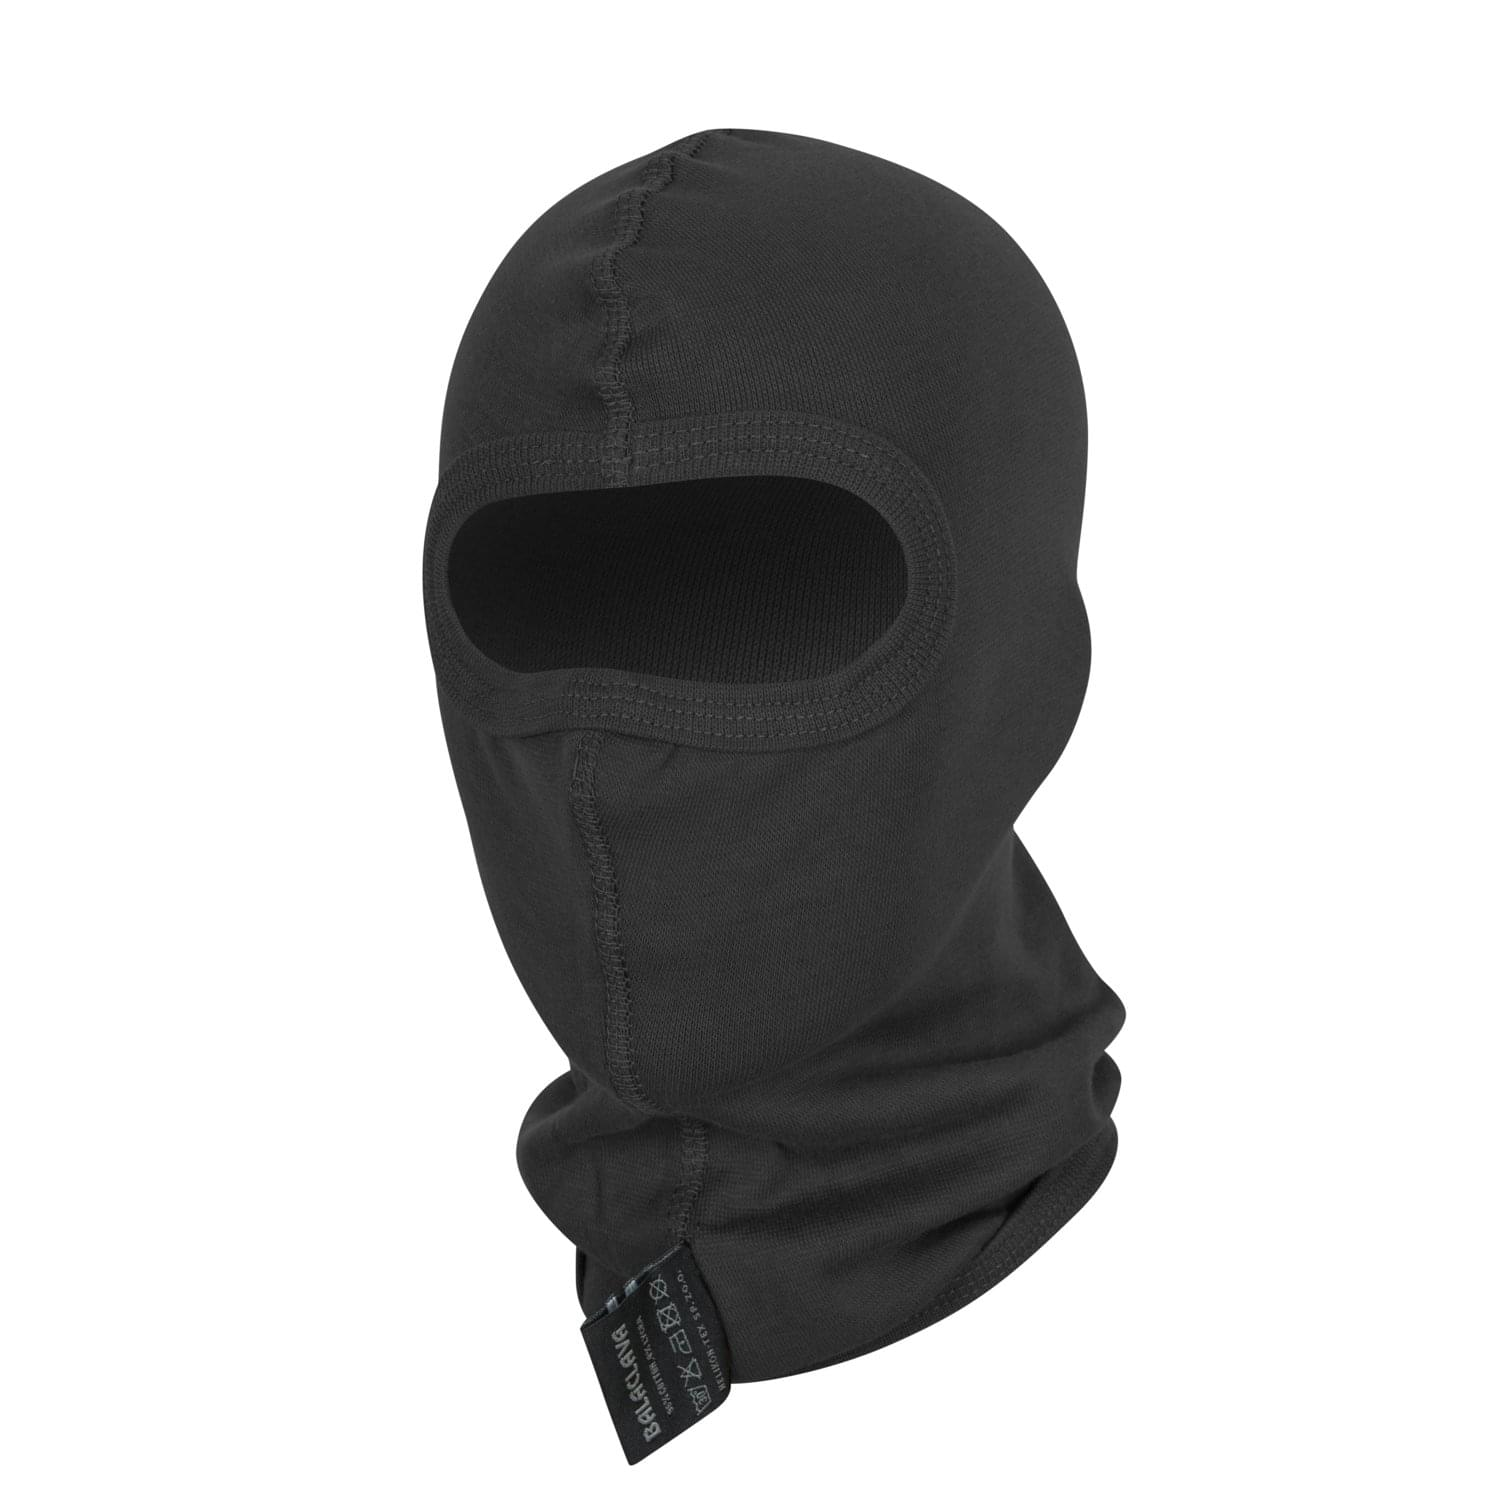 BALACLAVA - COTTON - Black